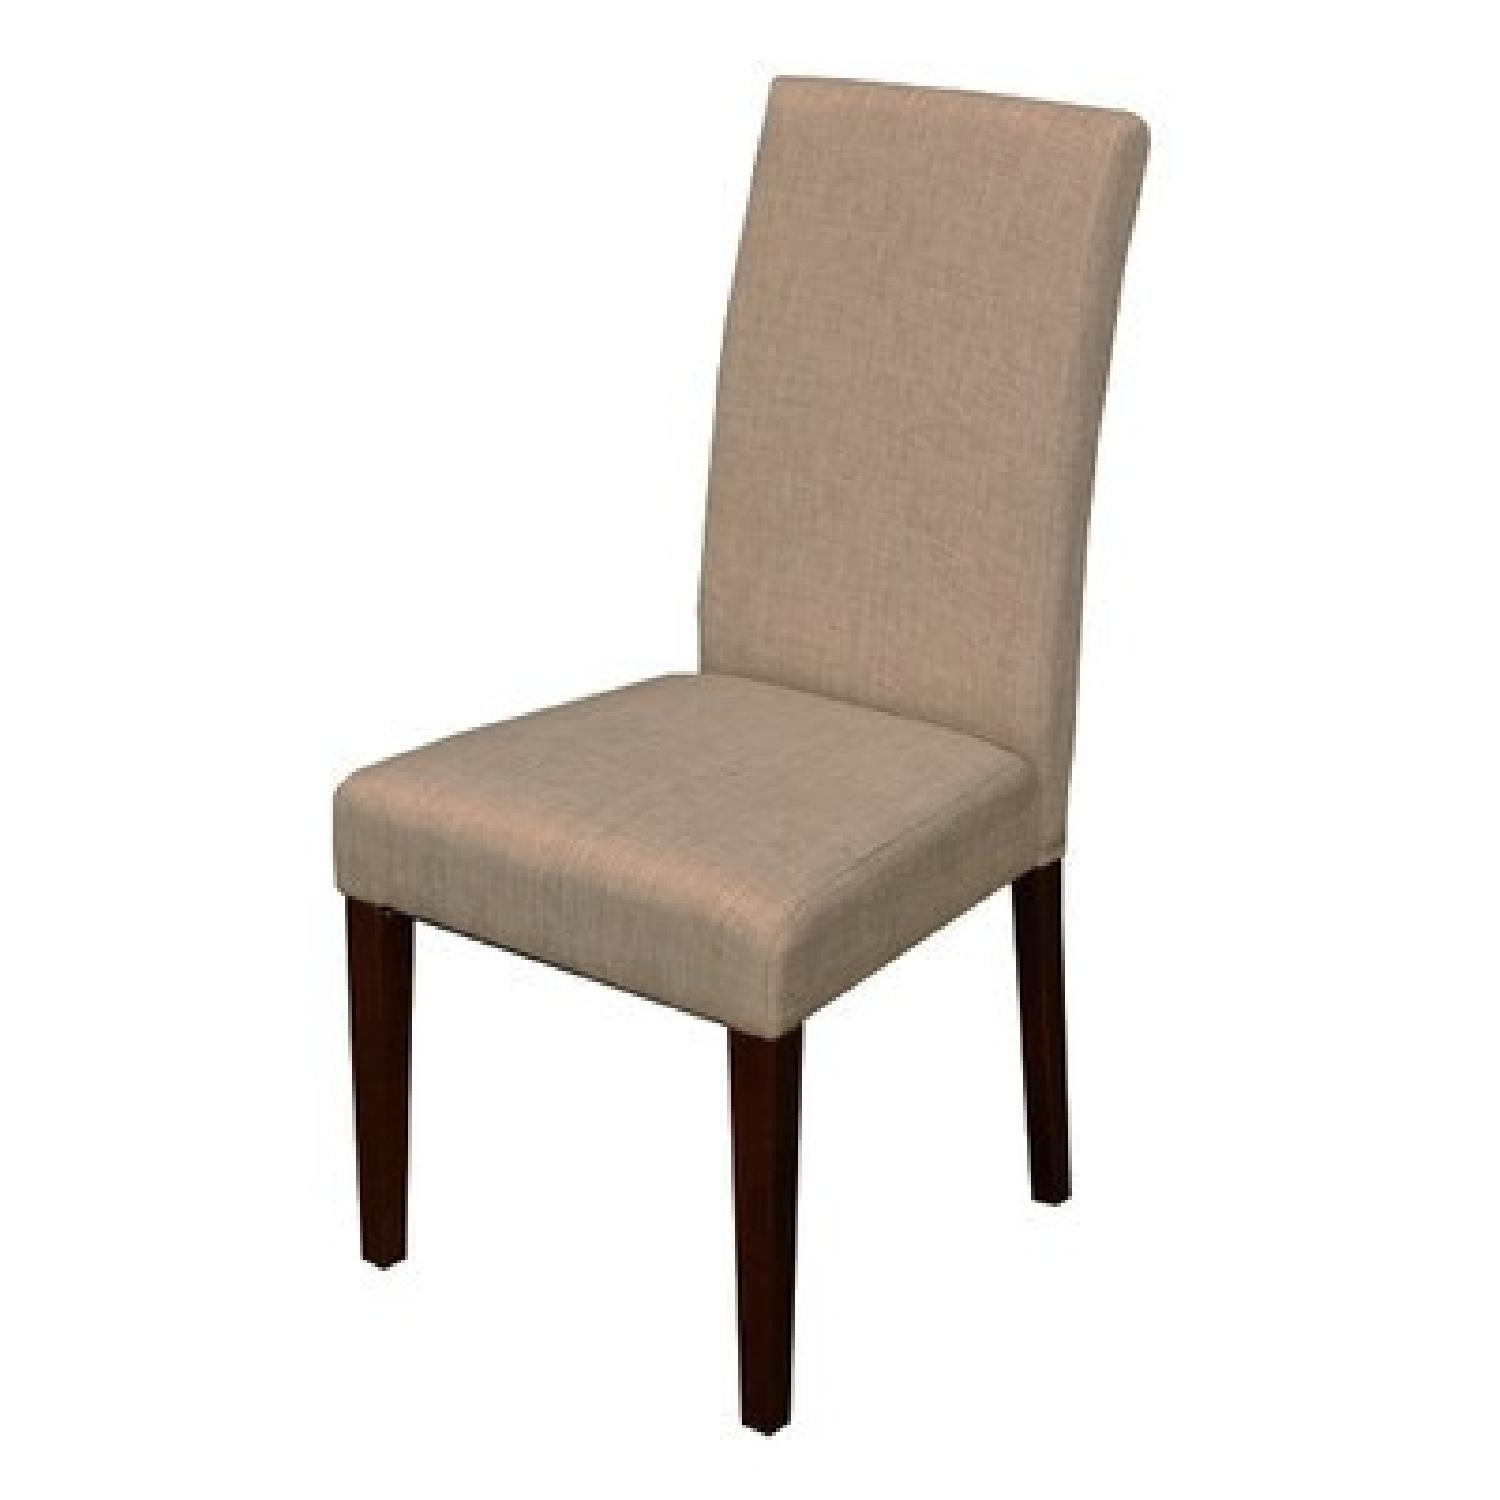 Monsoon Pacific Beige High-Backed Dining Chairs - image-0